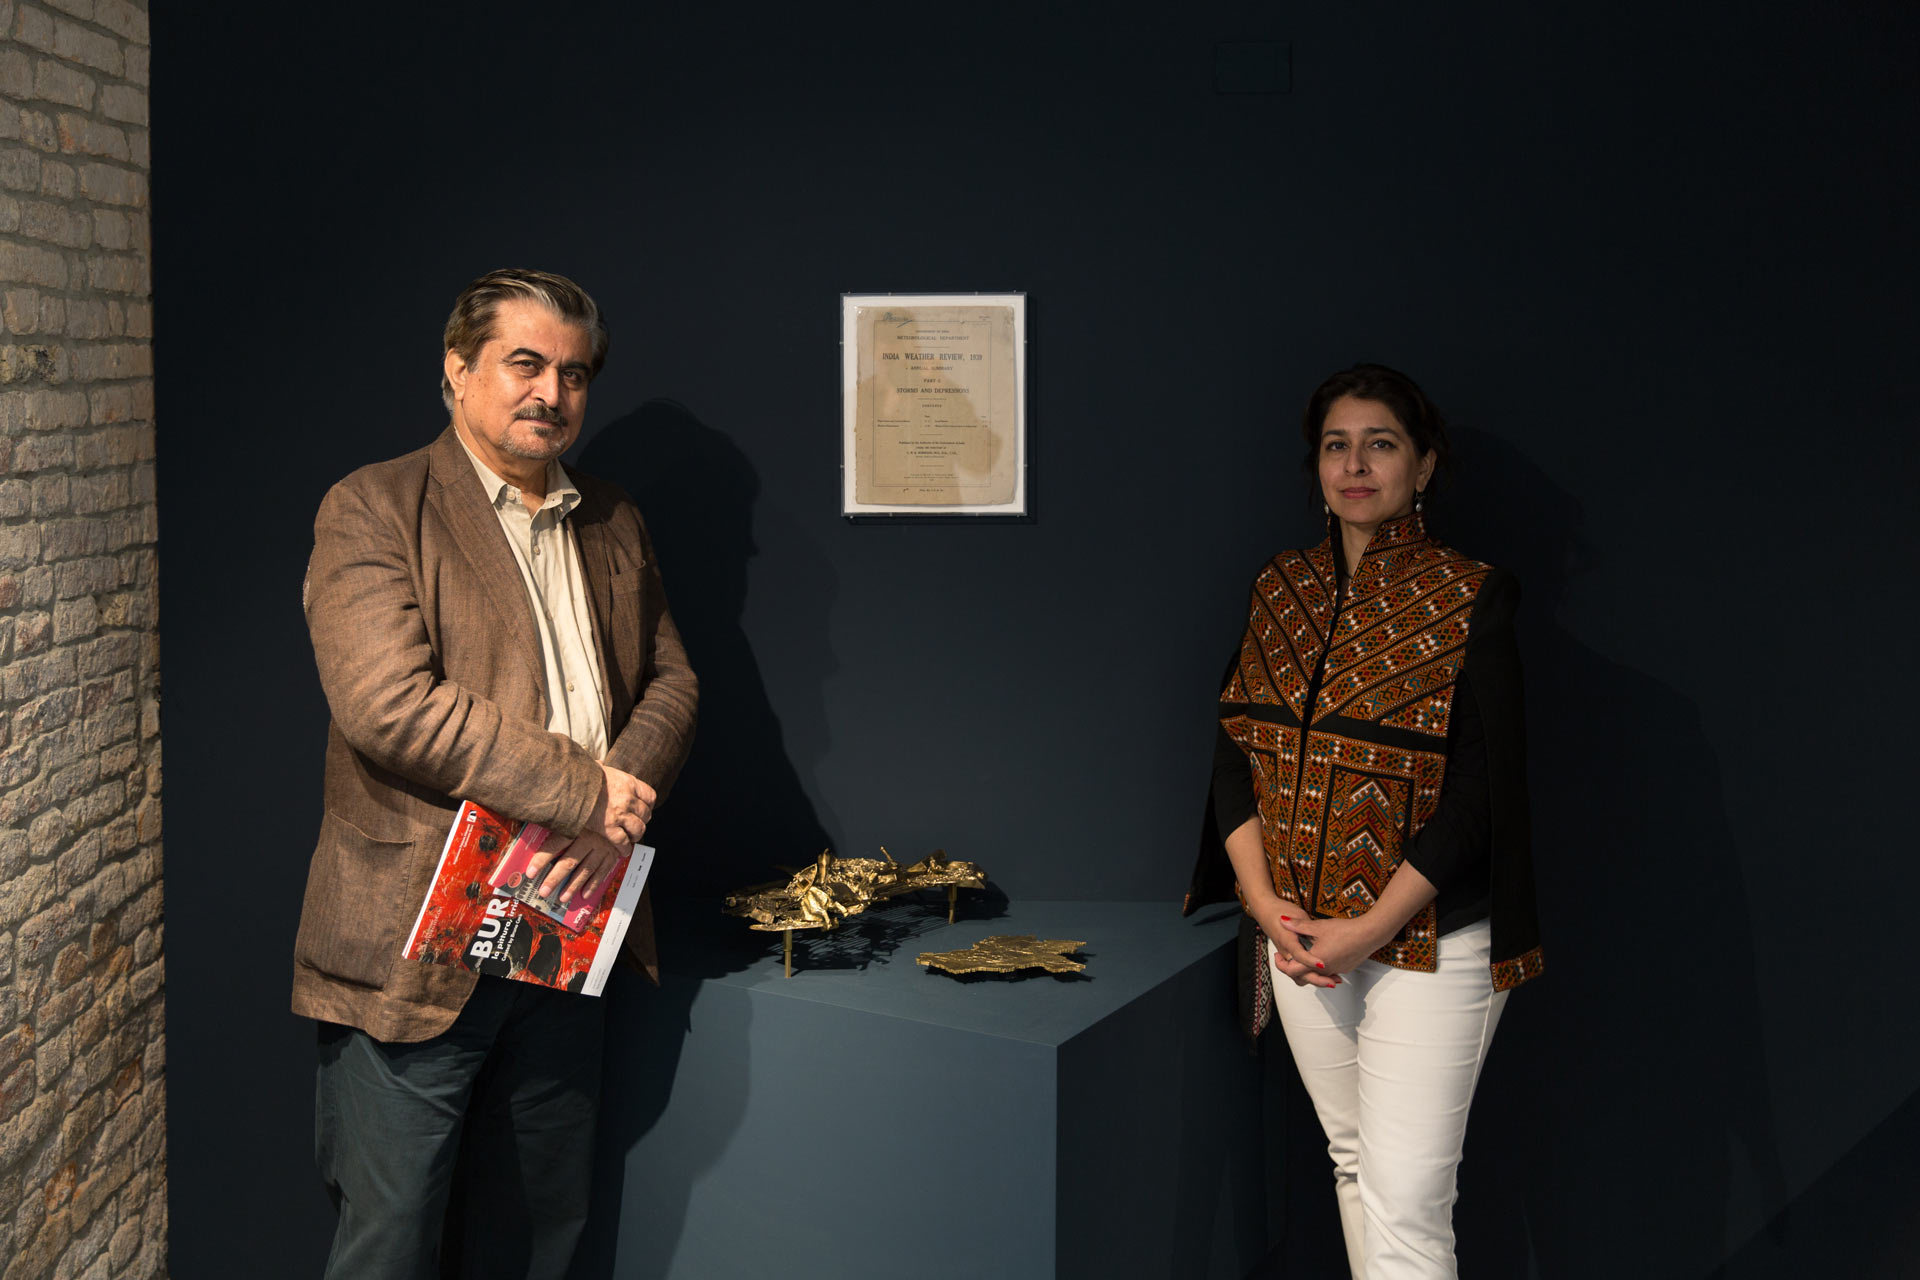 Commisioner-Artist-58-Art-Venice-Biennale-Manora-Fields-Note-Pakistan-Pavilion